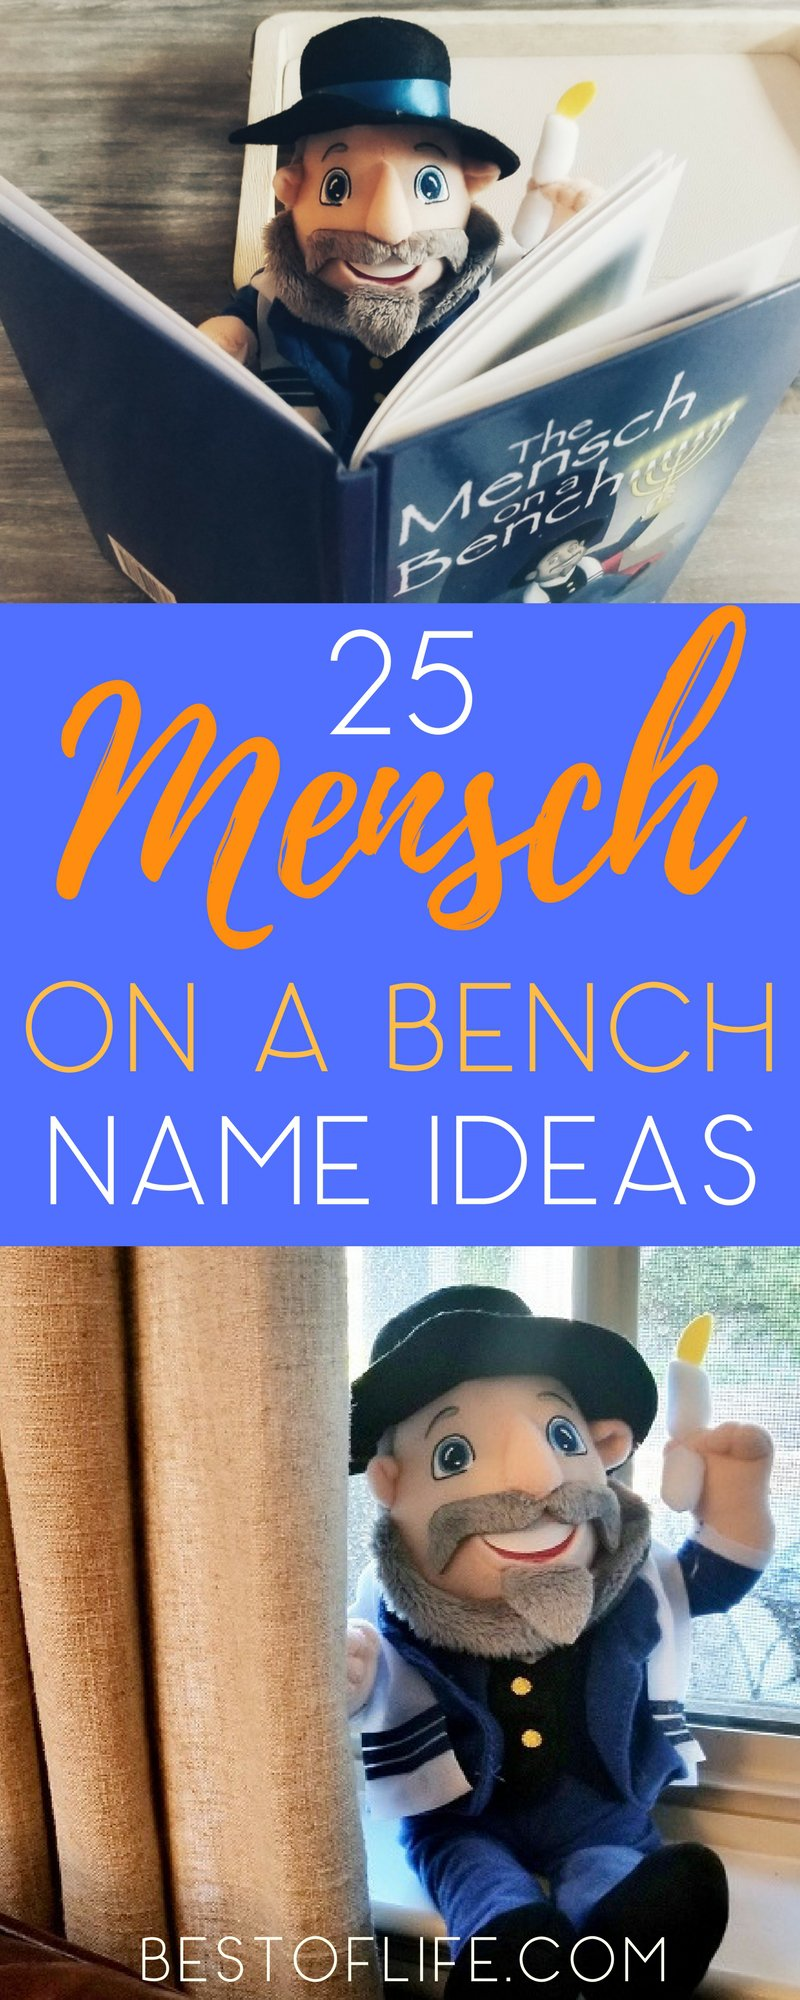 25 Mensch On A Bench Name Ideas For Hanukkah Fun The Best Of Life